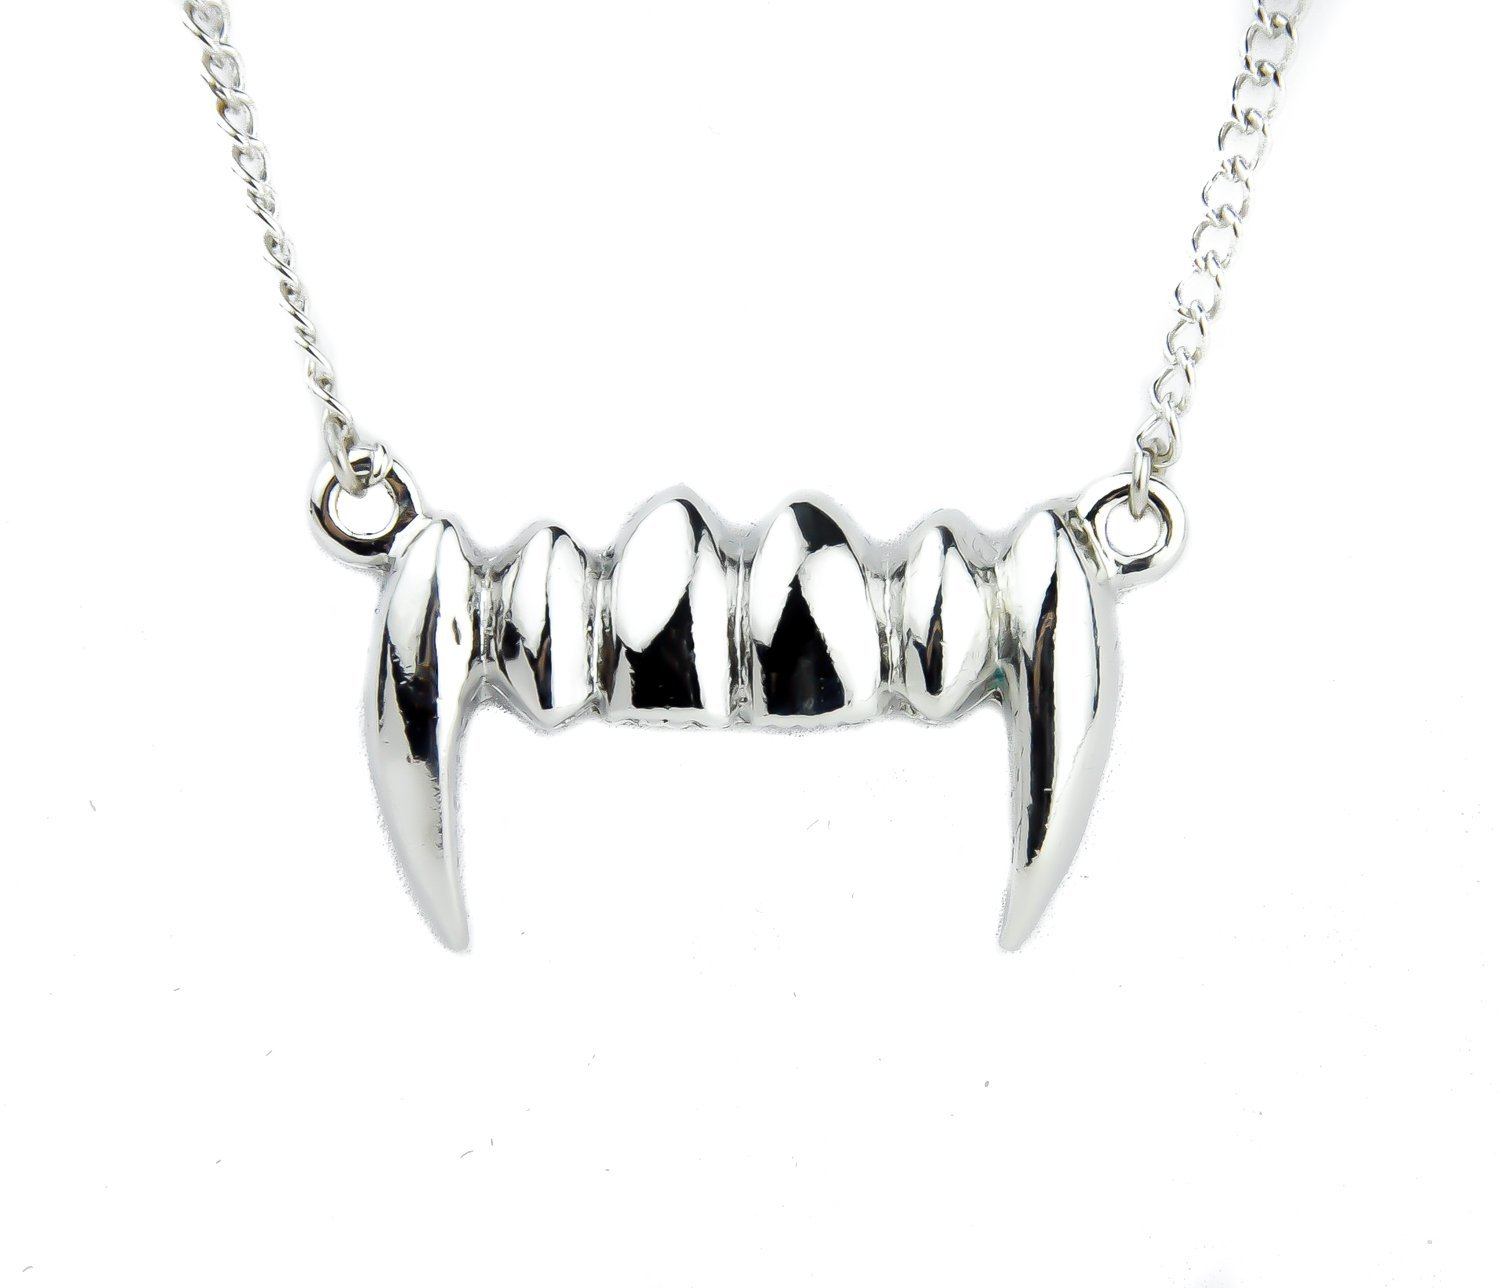 Amazon.com: Vampire Fang Necklace Bite Me Halloween Pendant: Jewelry